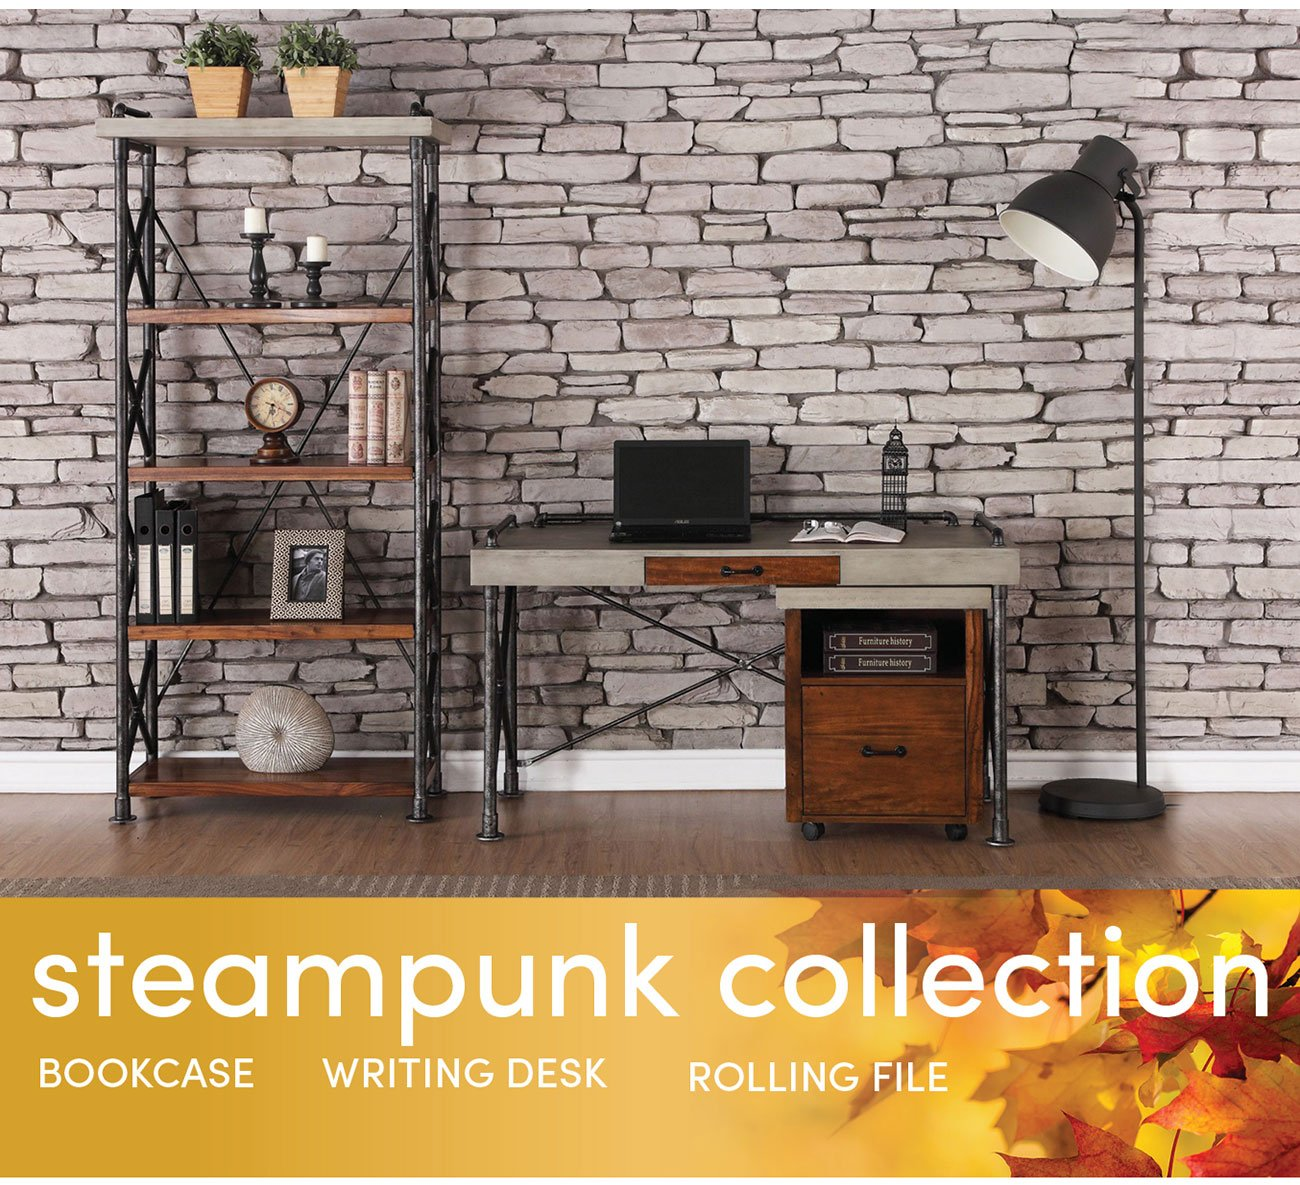 Steampunk-collection